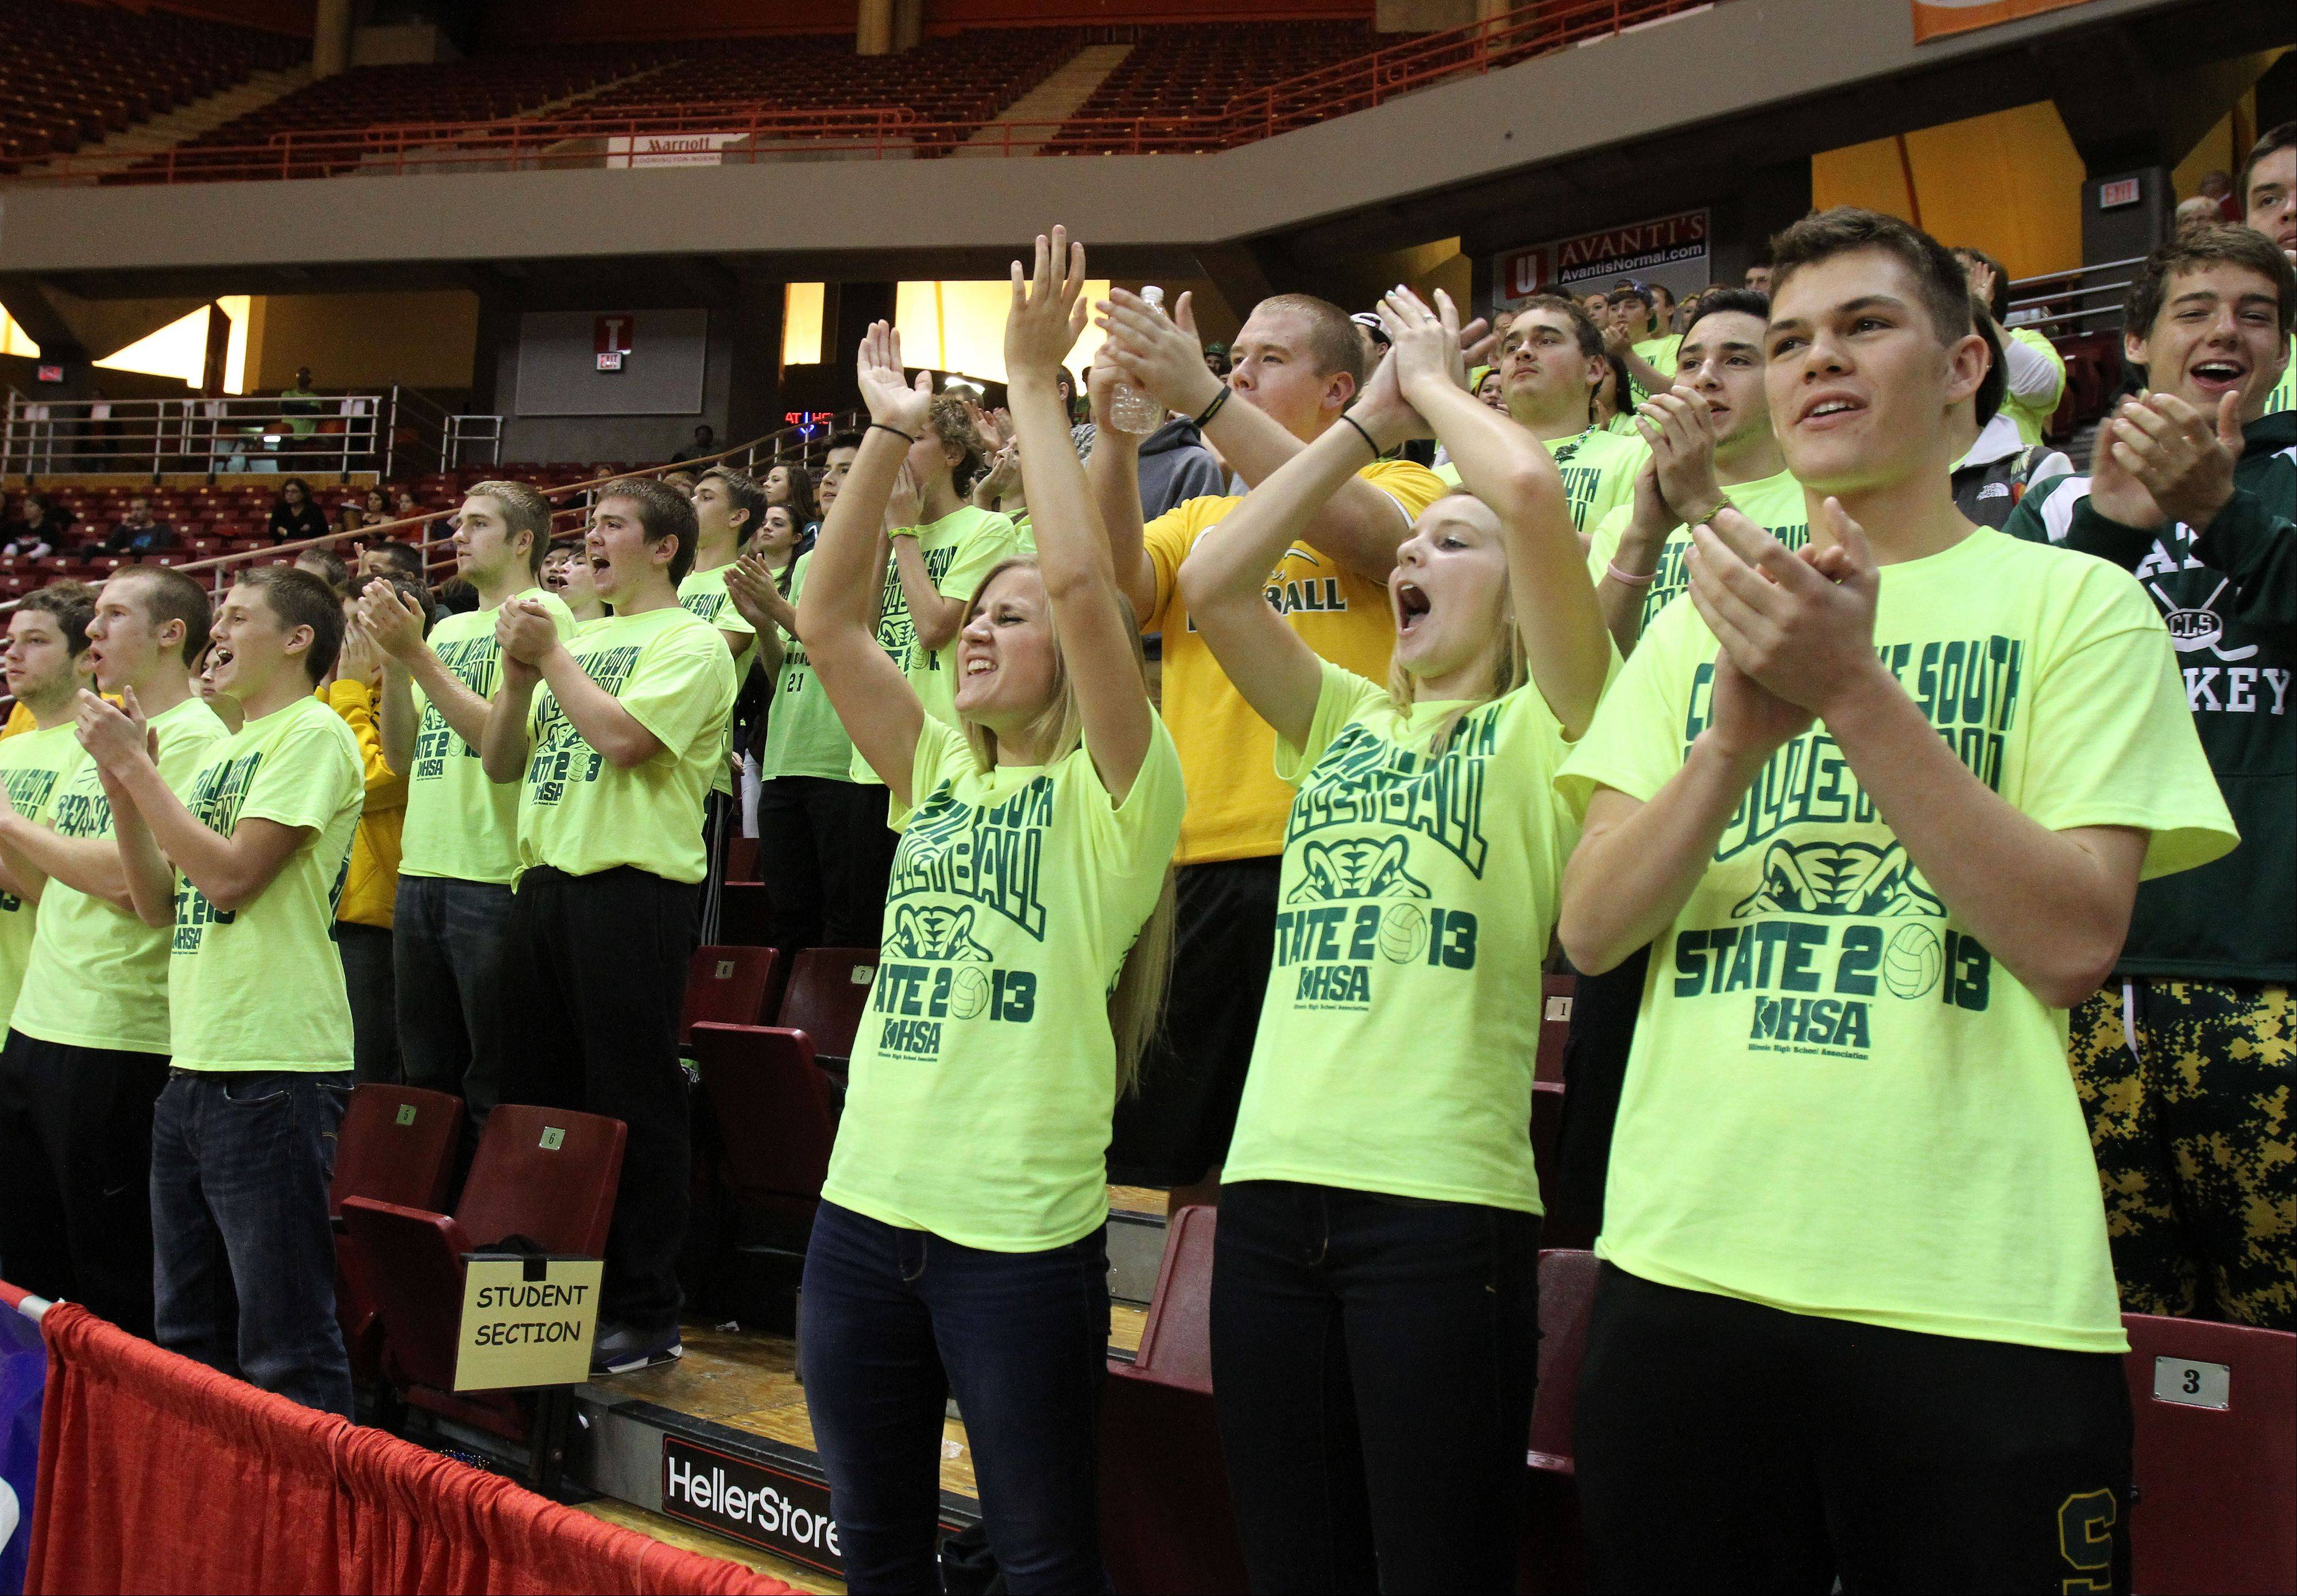 Crystal Lake South fans get into the spirit for the Class 4A state girls volleyball on Friday in Normal.